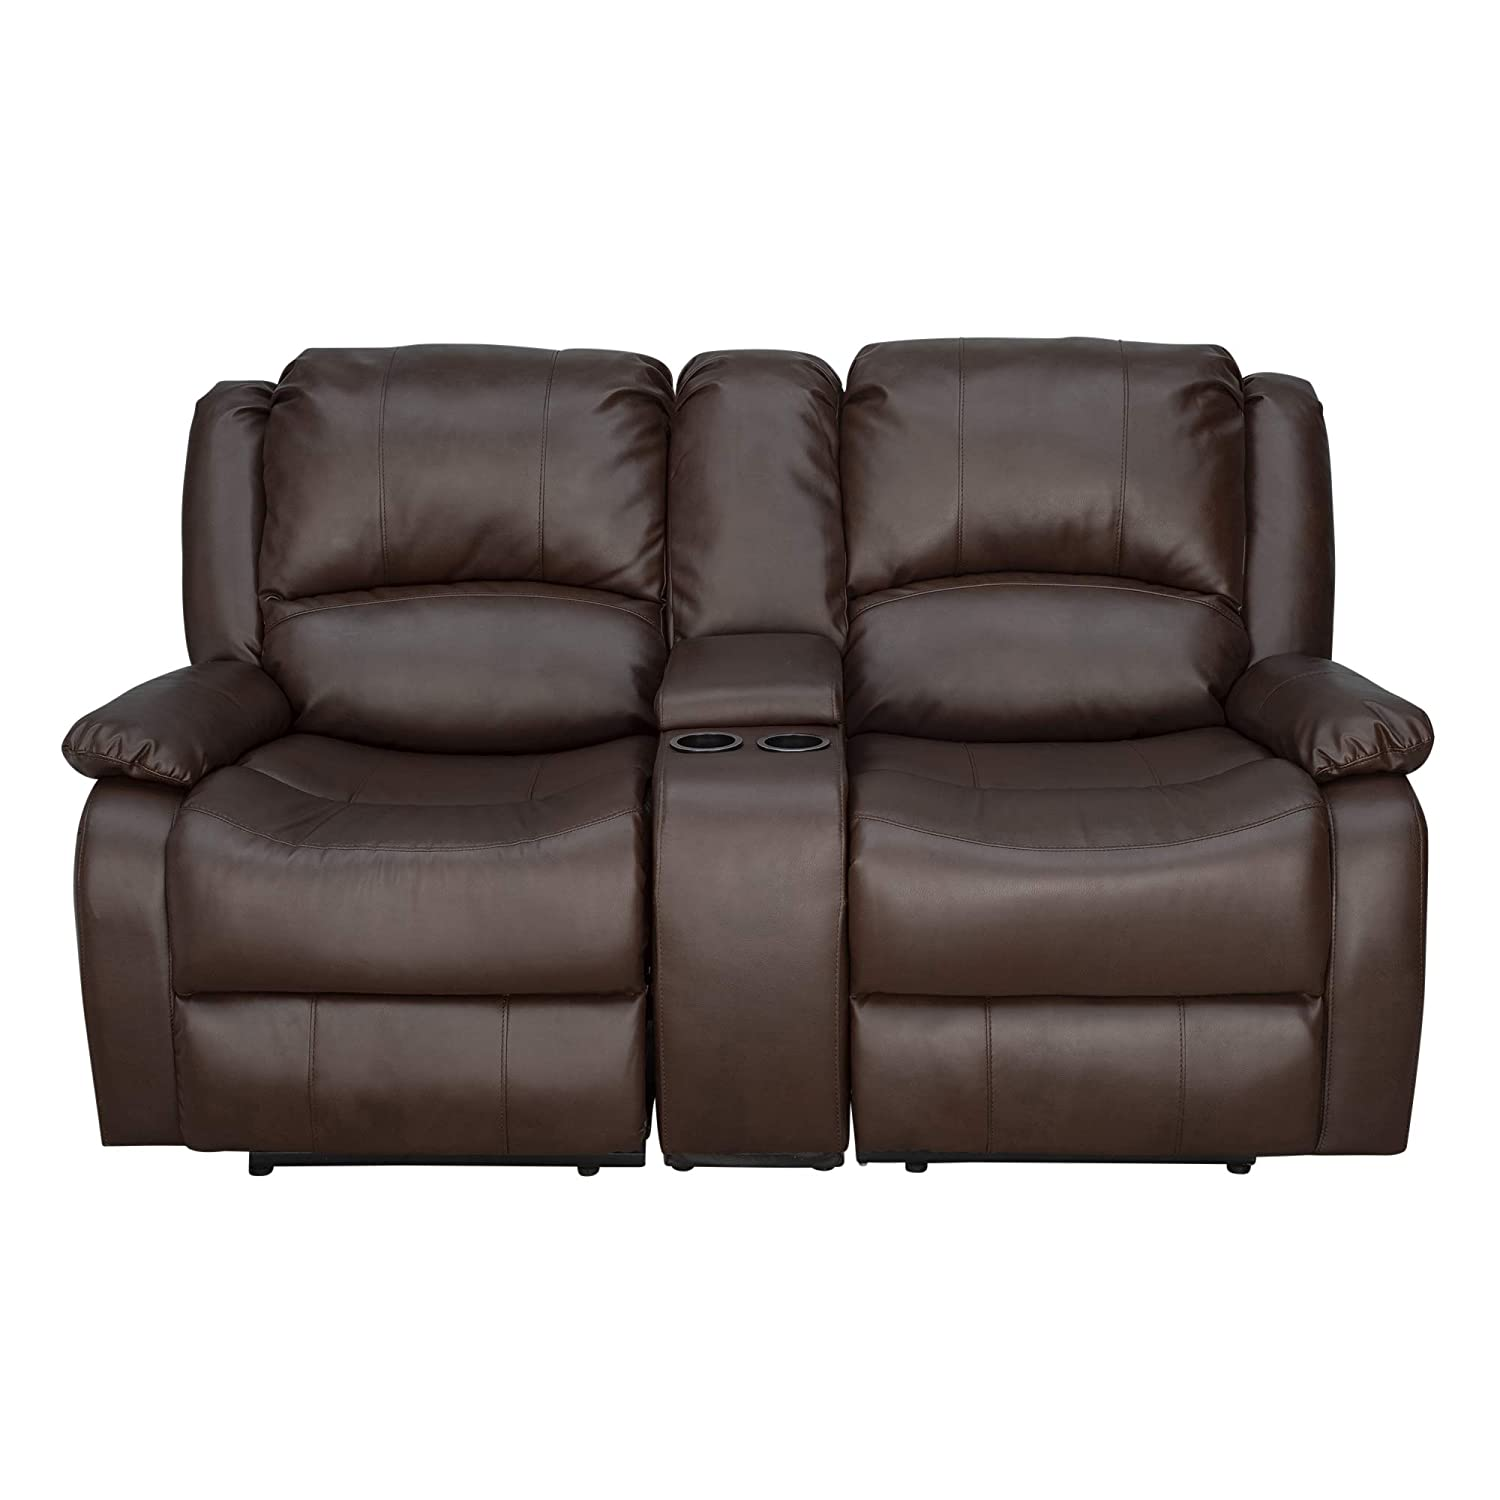 Amazoncom Recpro Charles Collection 67 Double Recliner Rv Sofa